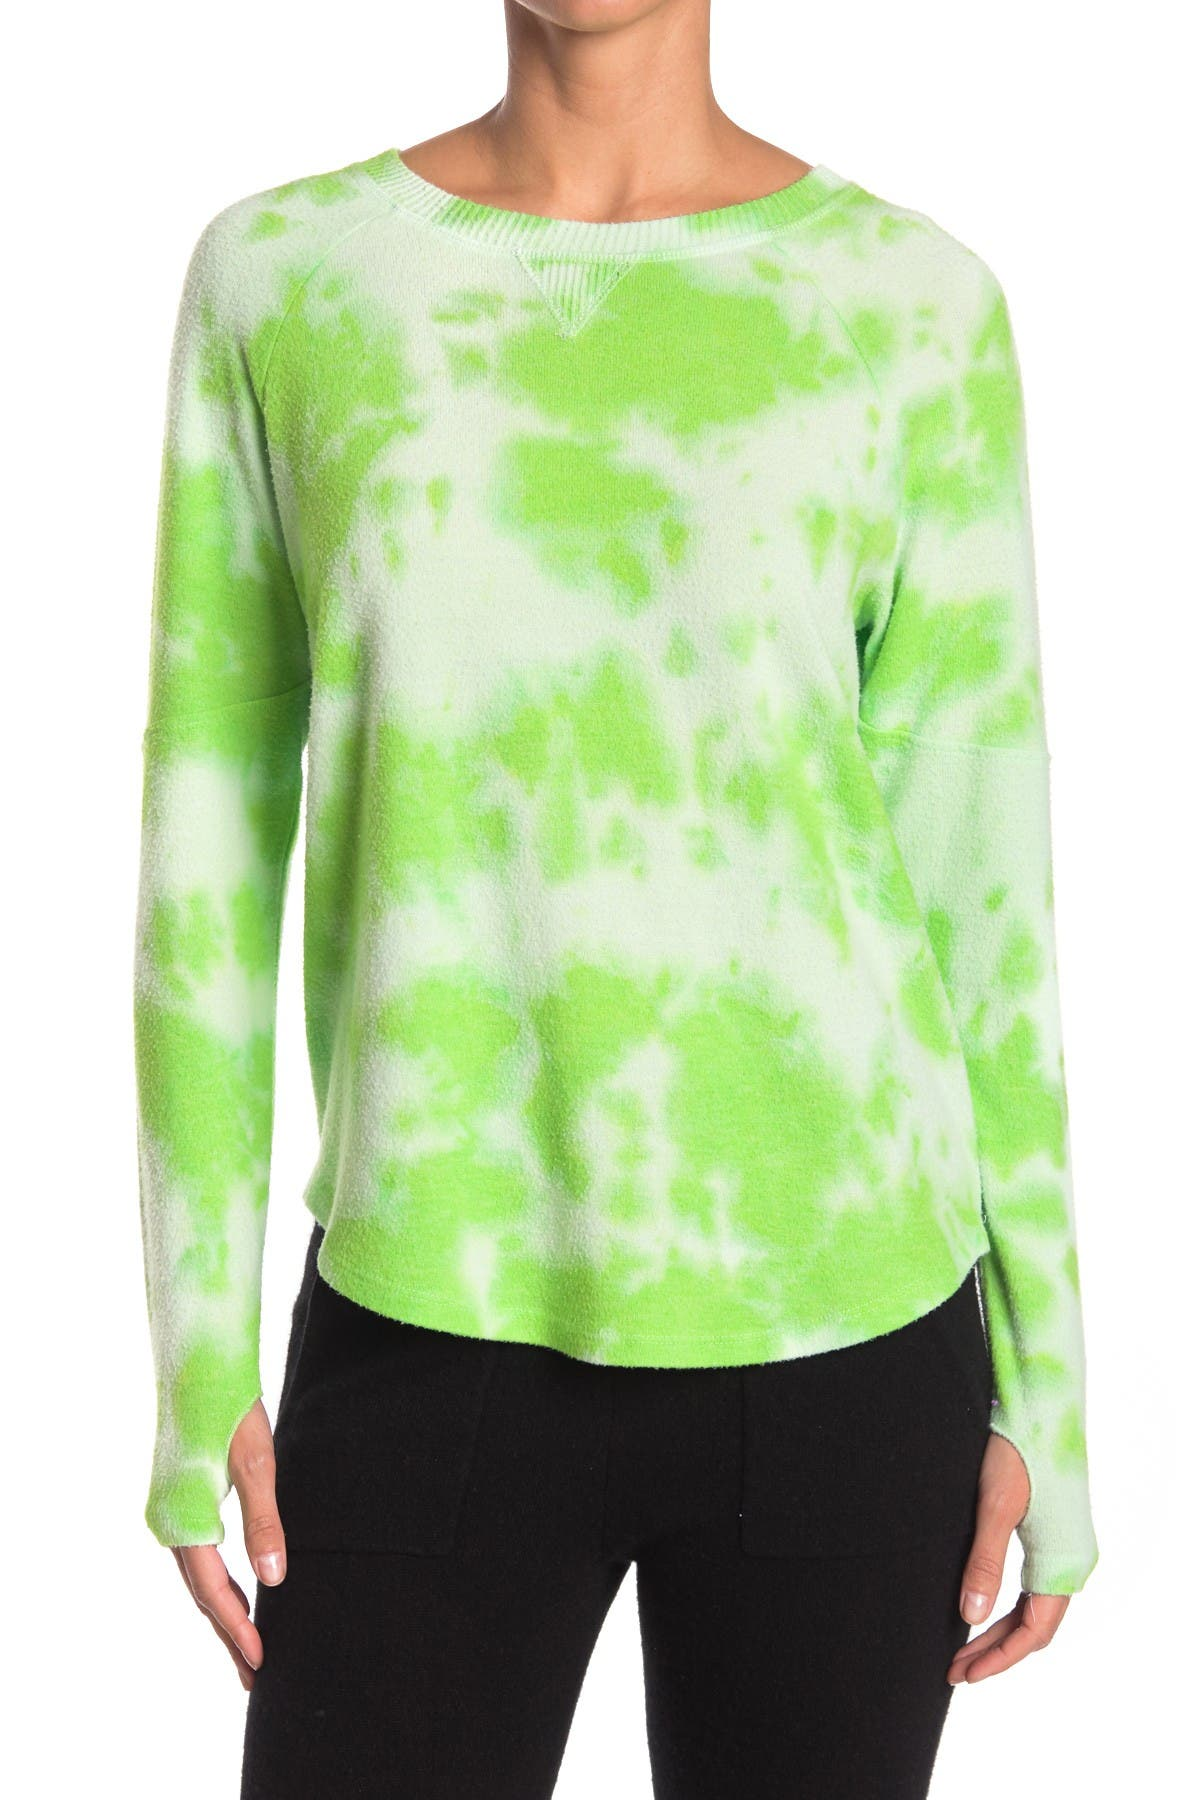 Image of Theo and Spence Thumbhole Tie-Dye Pullover Sweater